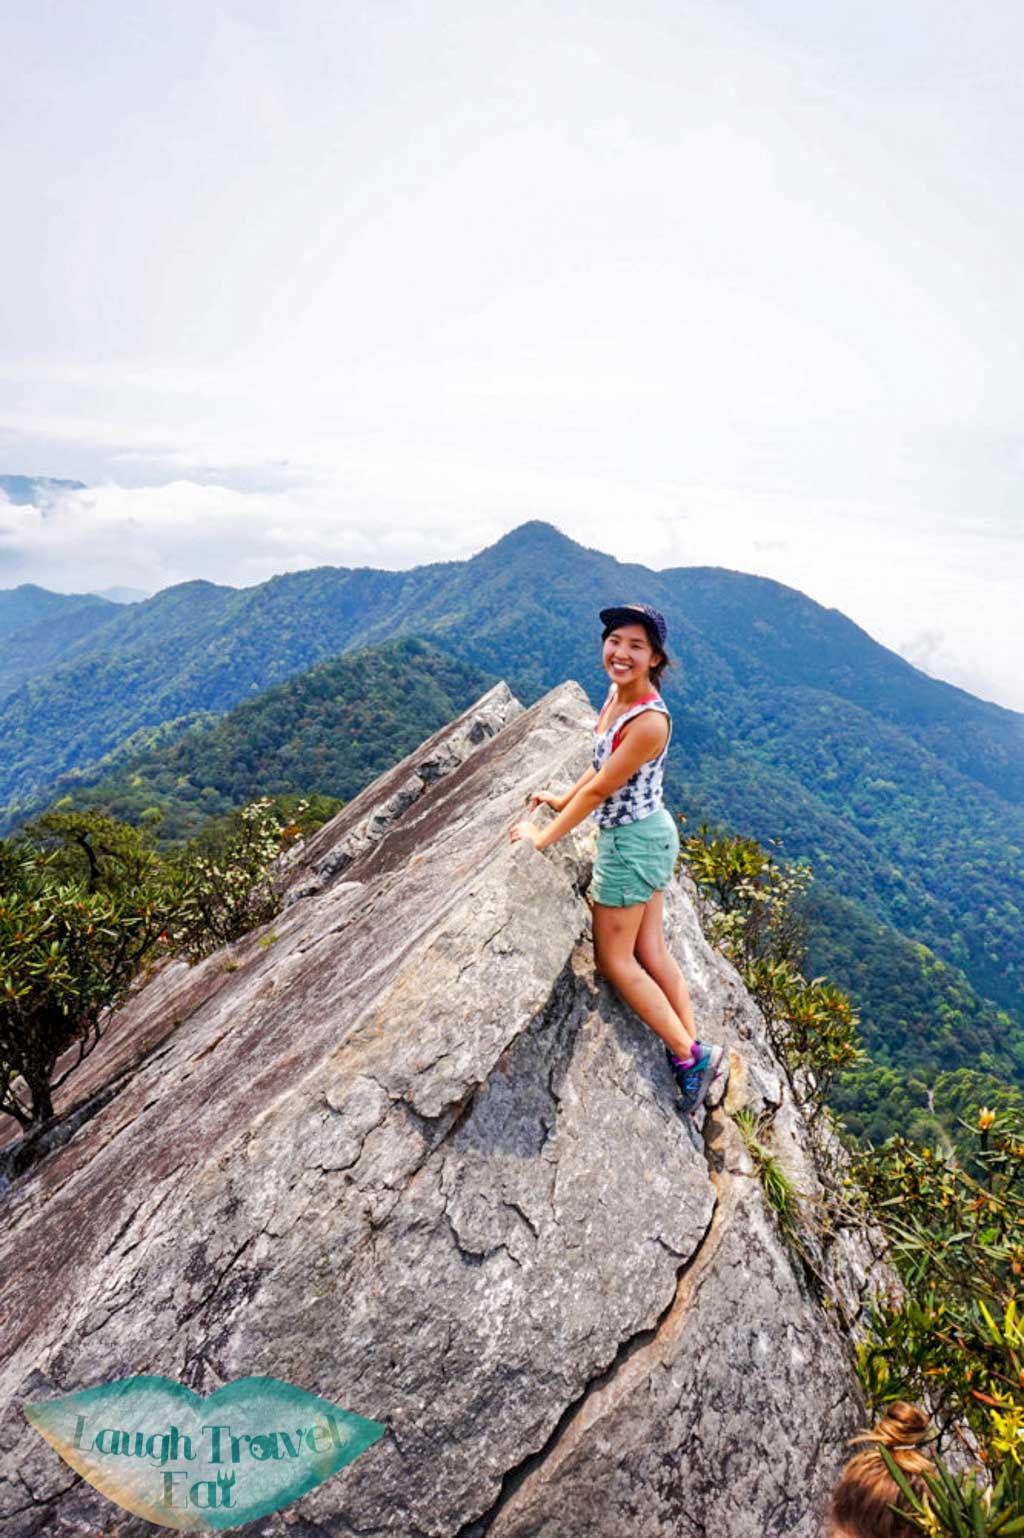 Triumphant photo at the top of Yuan Zui Mountain in Dasyueshan National Forest Recreational Area, Taichung - Laugh Travel Eat